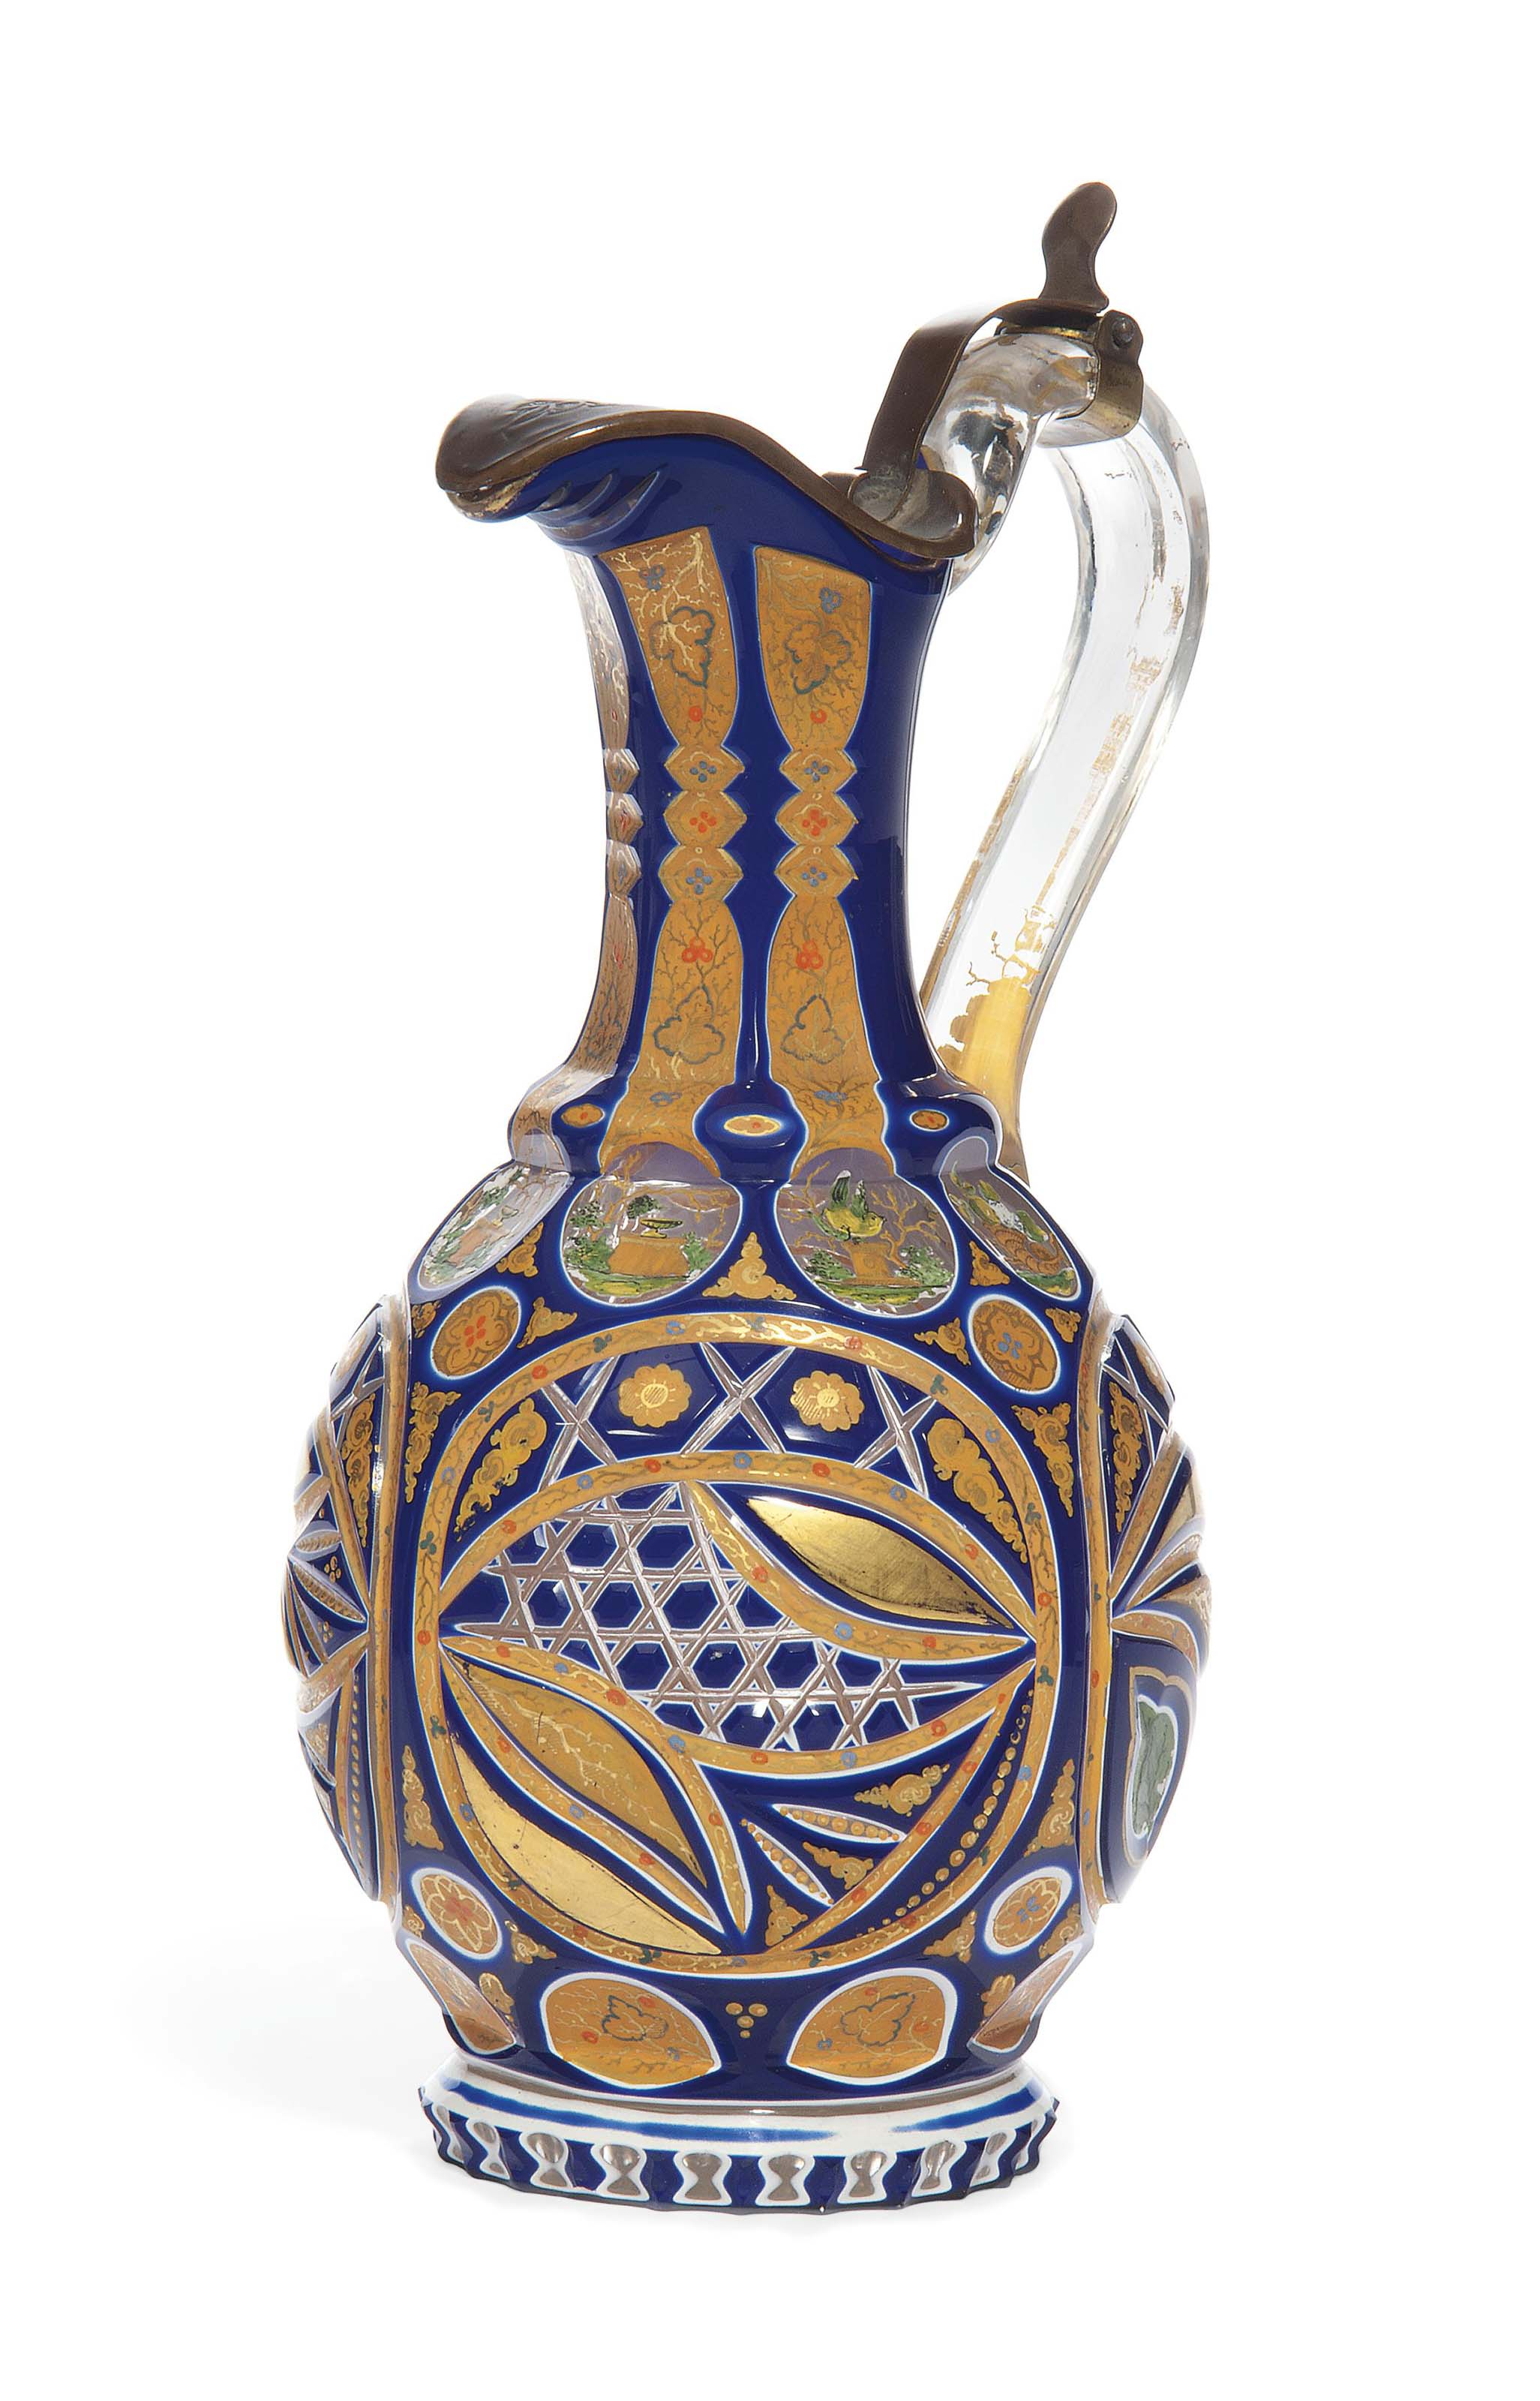 A BOHEMIAN CLEAR-FLASH WHITE AND BLUE-OVERLAY CUT AND ENAMELLED GLASS EWER